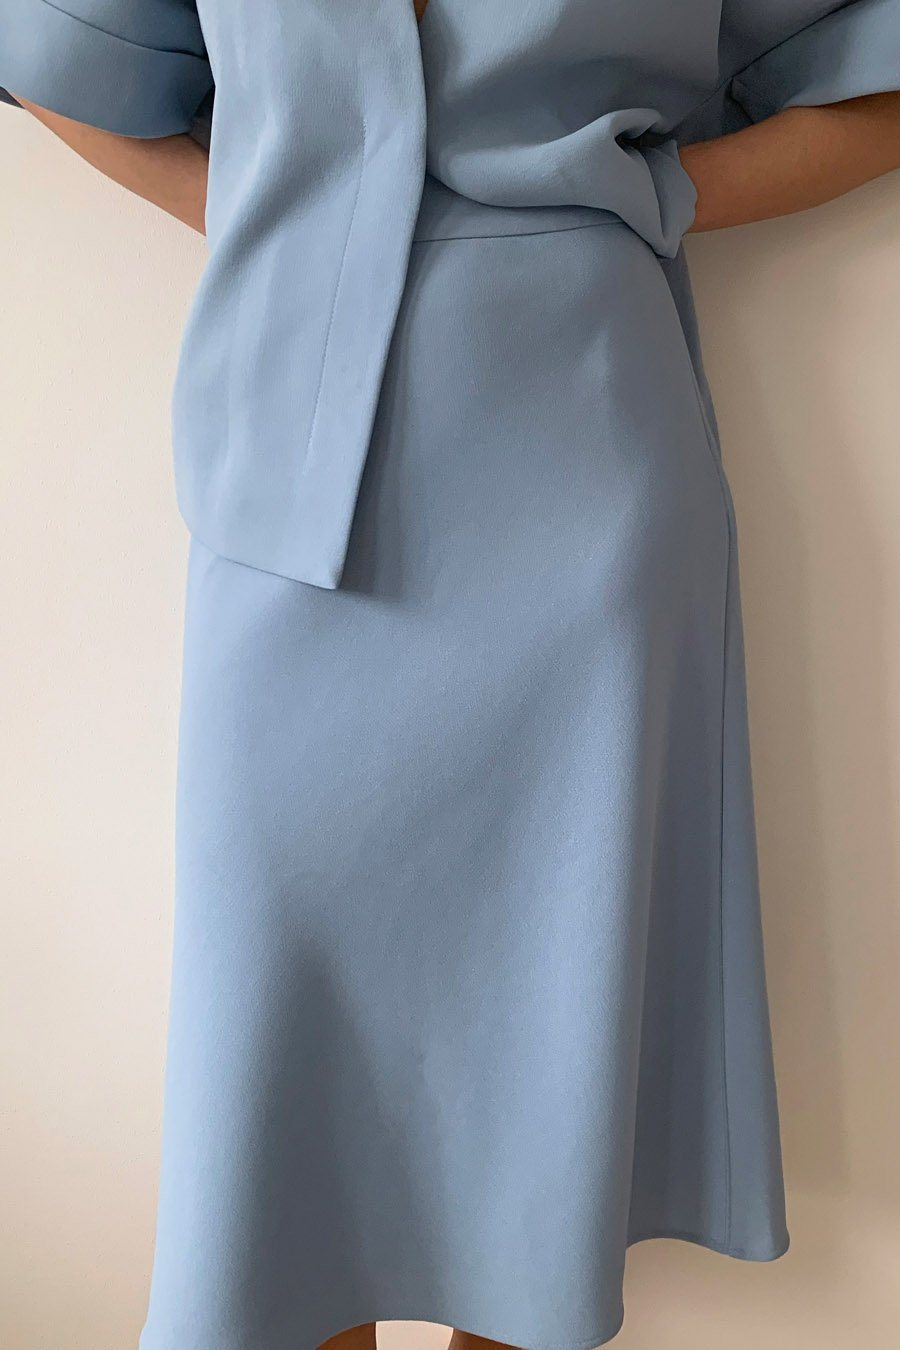 BRIDGE SKIRT - LIGHT BLUE Skirt Stylein